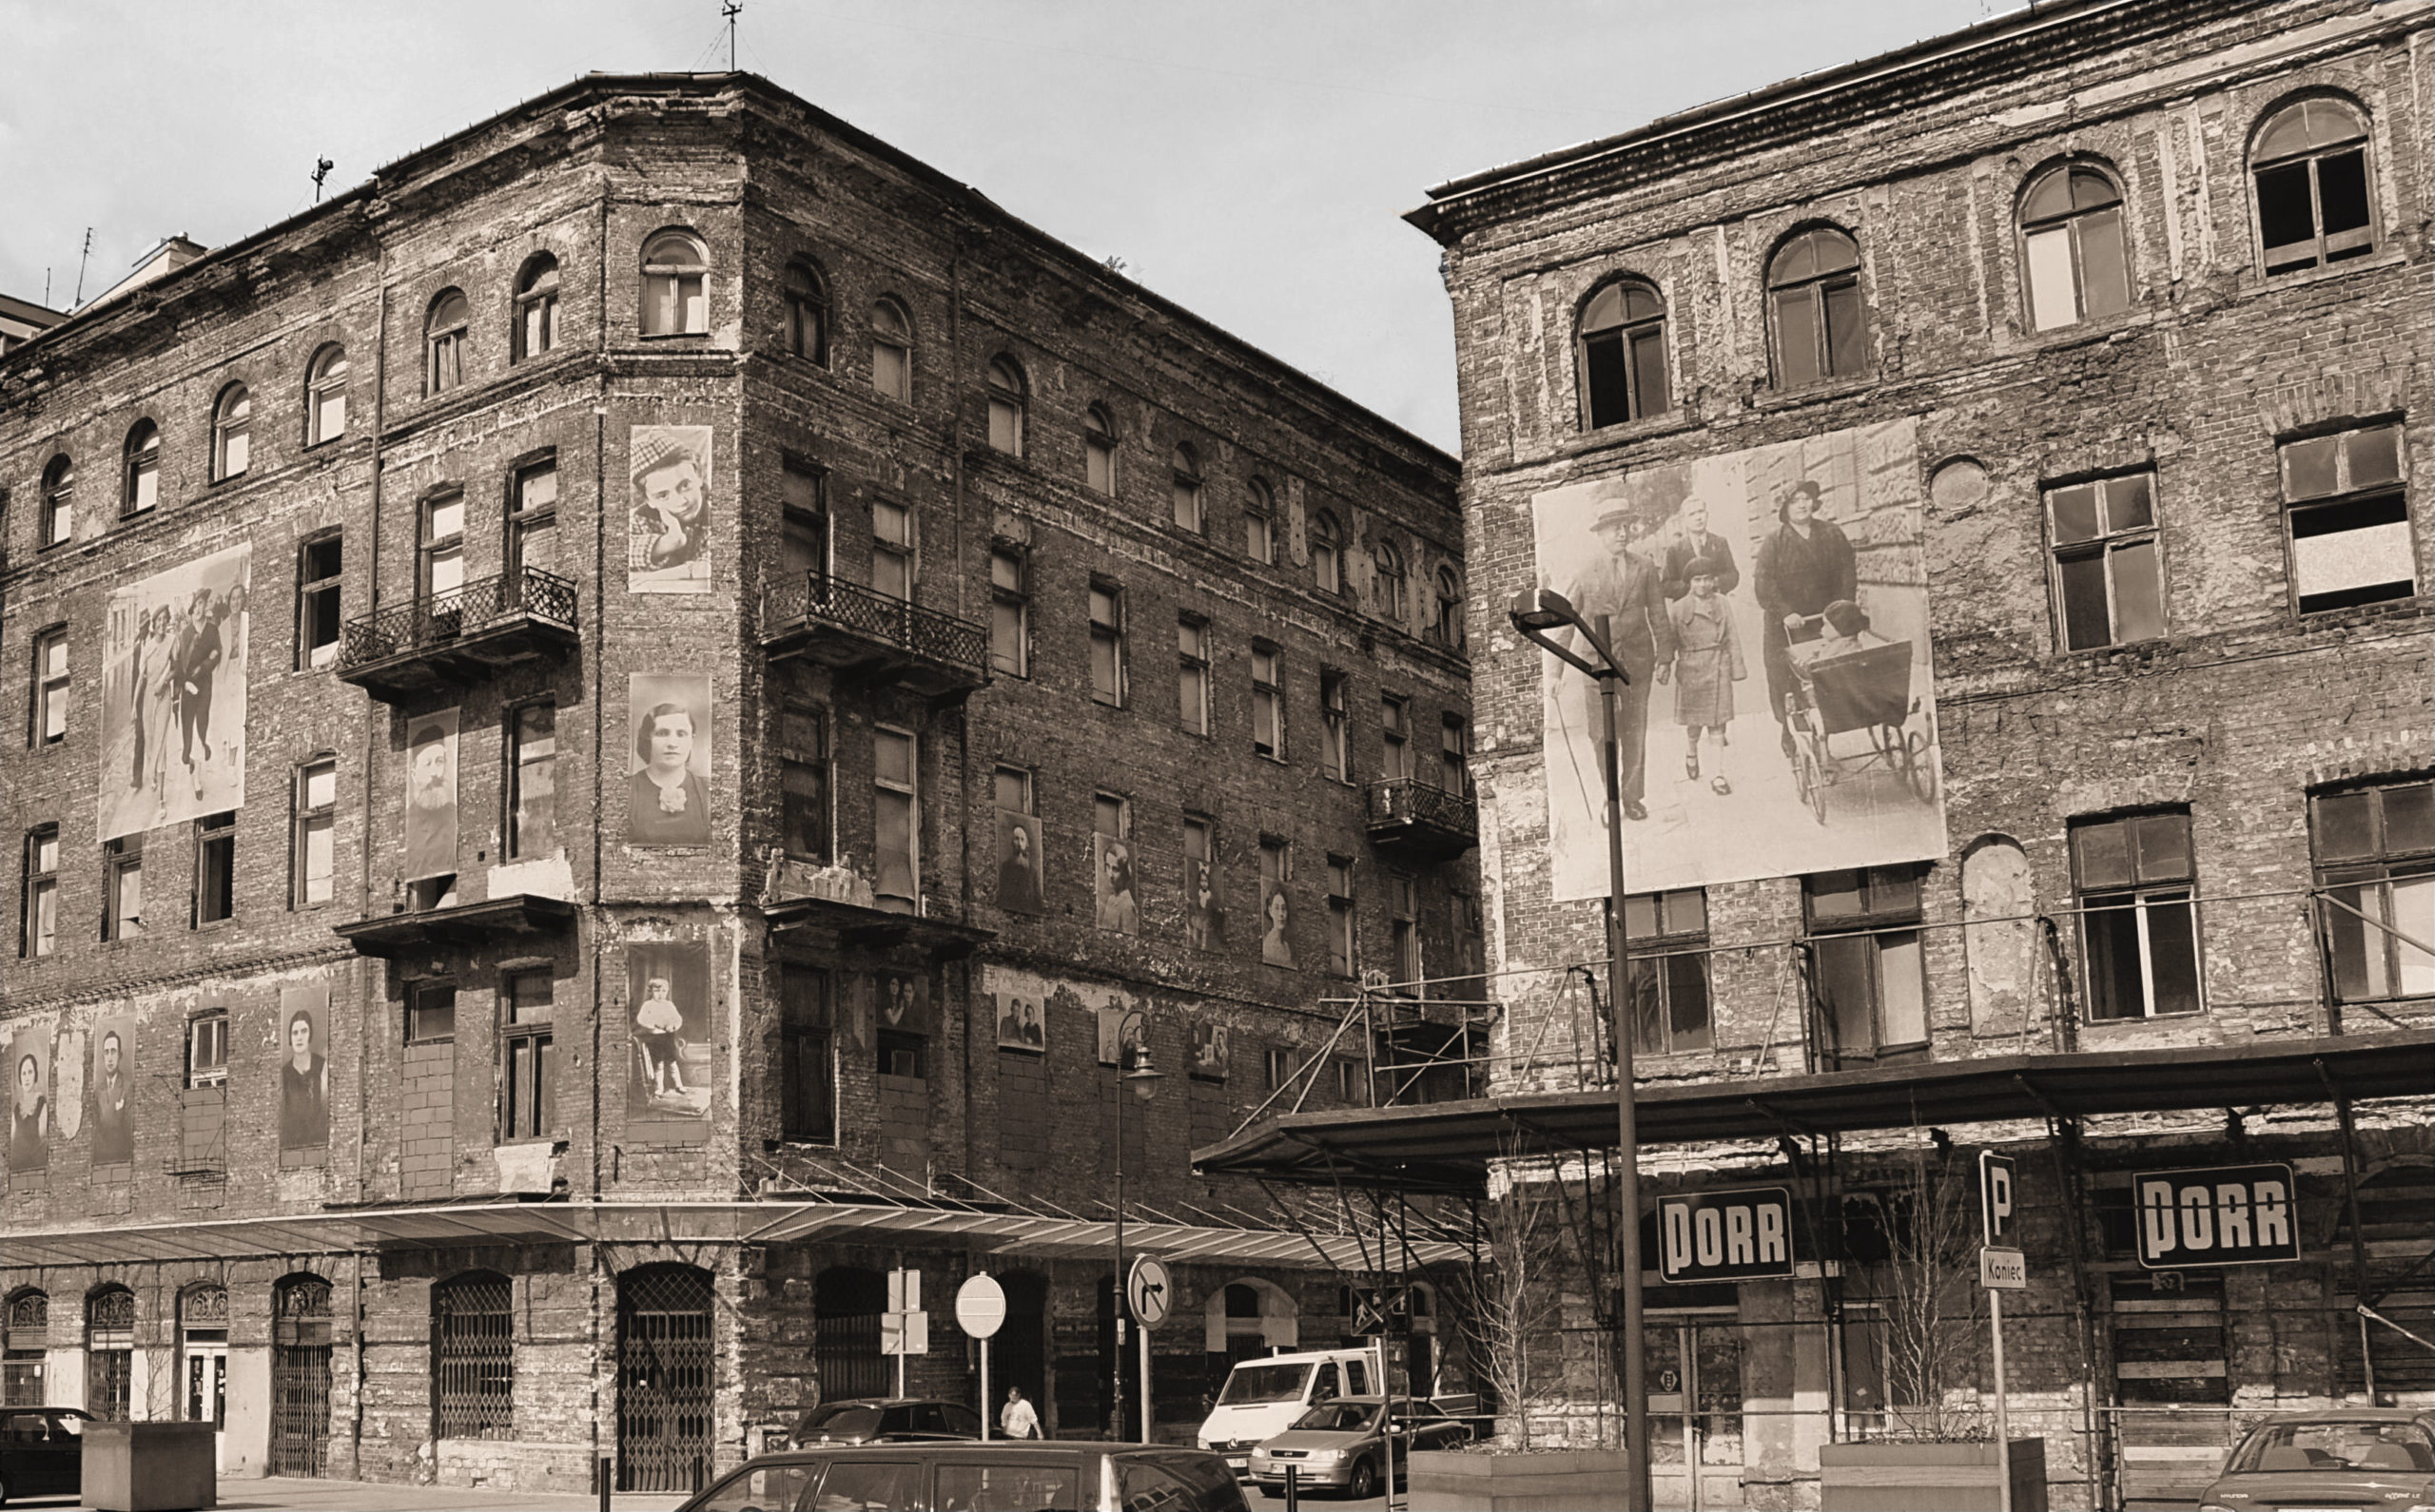 Surviving buildings from the Warsaw Ghetto. Photo courtesy of Michael Leibson